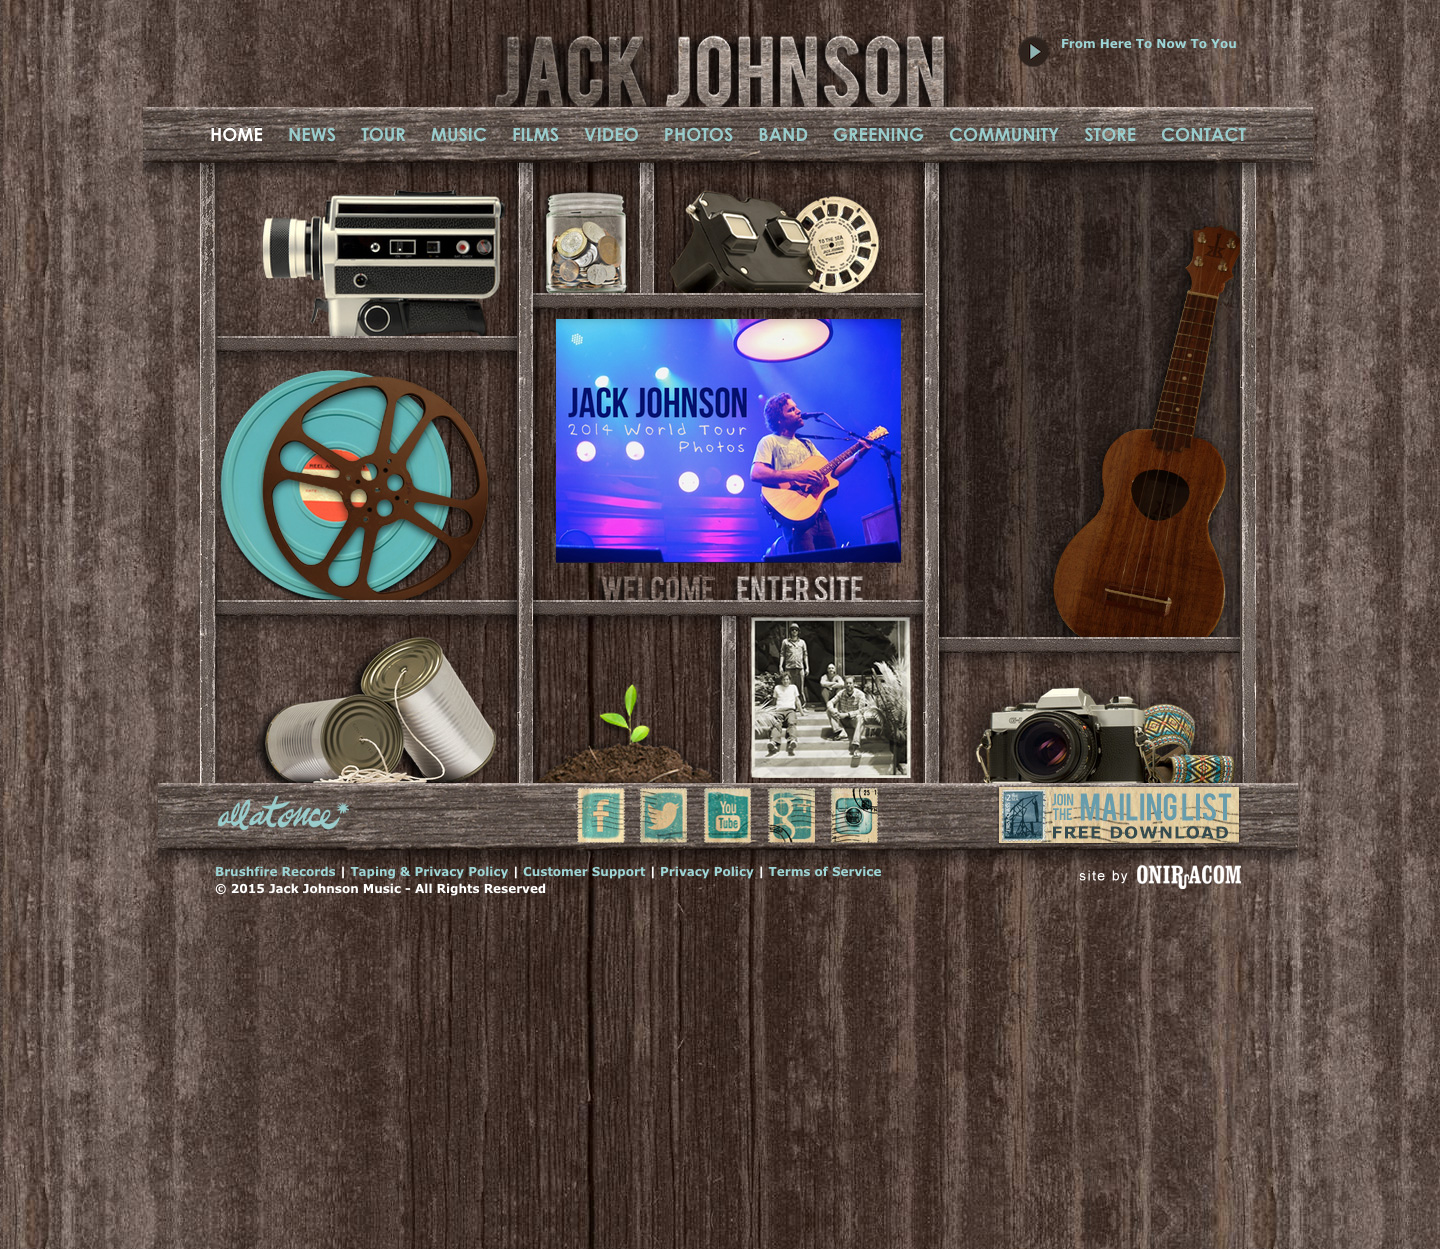 Jack Johnson website built by Aquatic in San Francisco